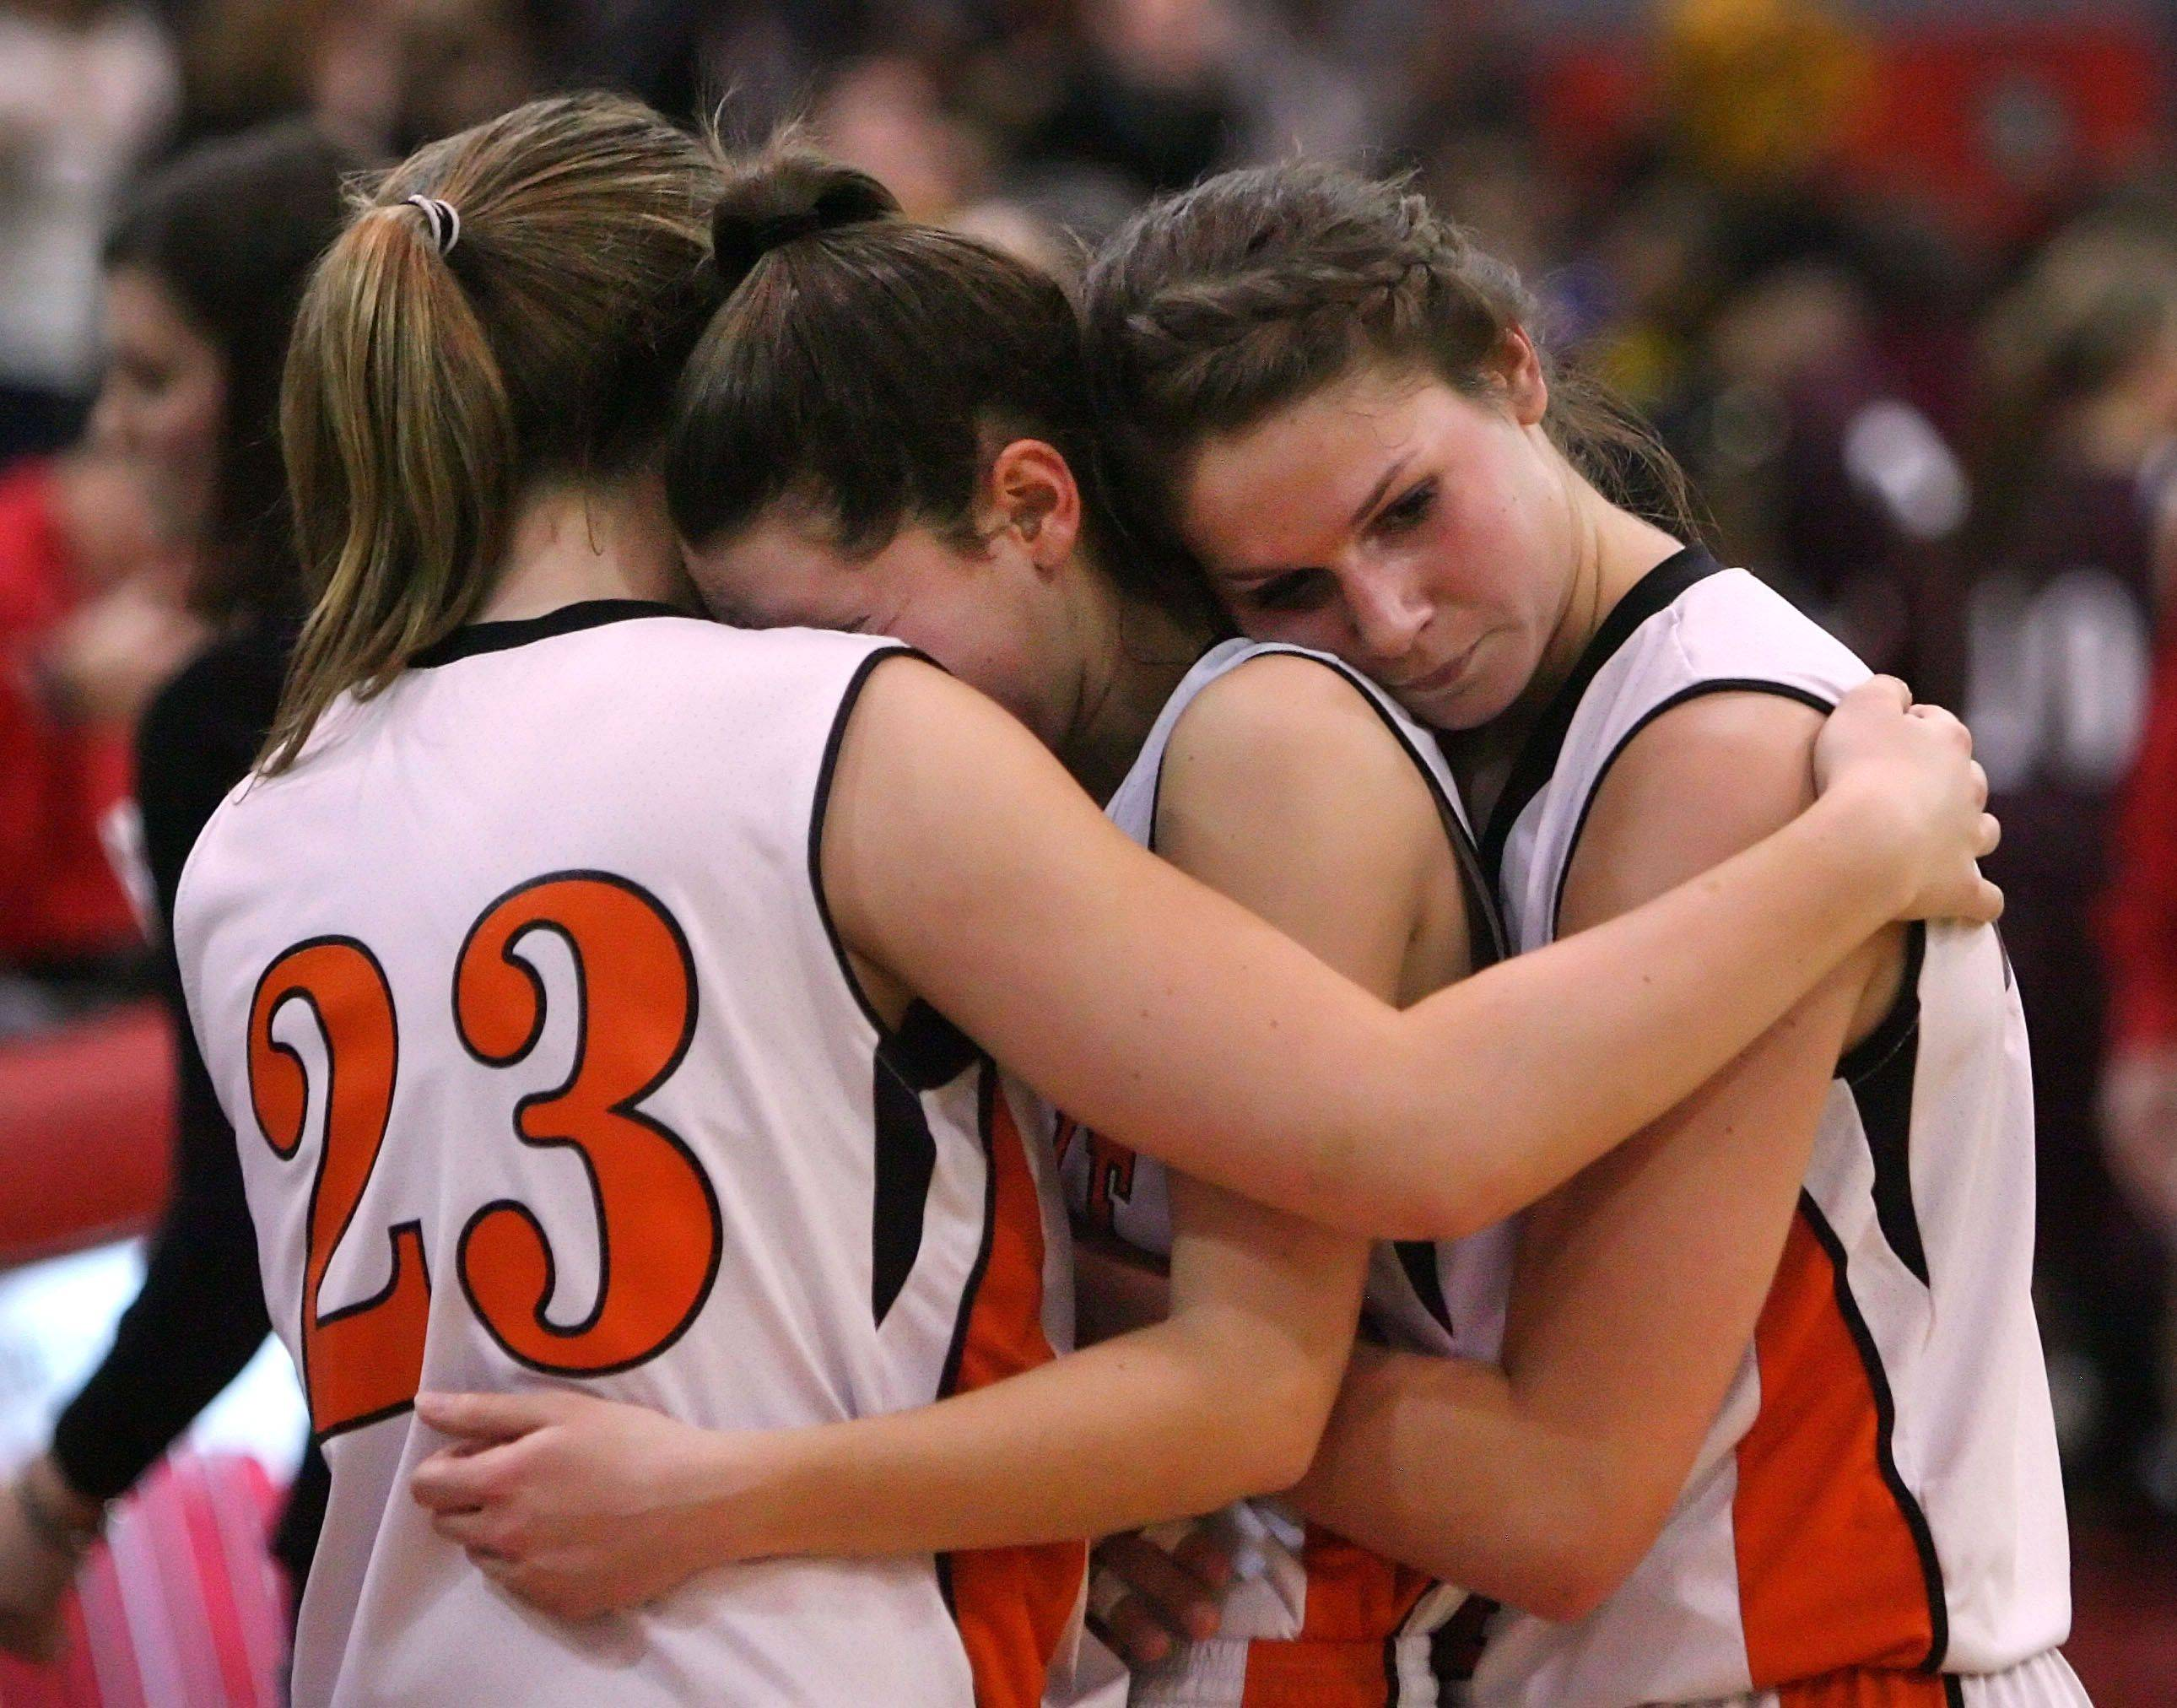 Libertyville girls from left, Molly Moon, Valerie Van Roeyen and Kaca Savatic embrace after losing to Zion-Benton in the sectional semifinals Monday night at Mundelein High School.